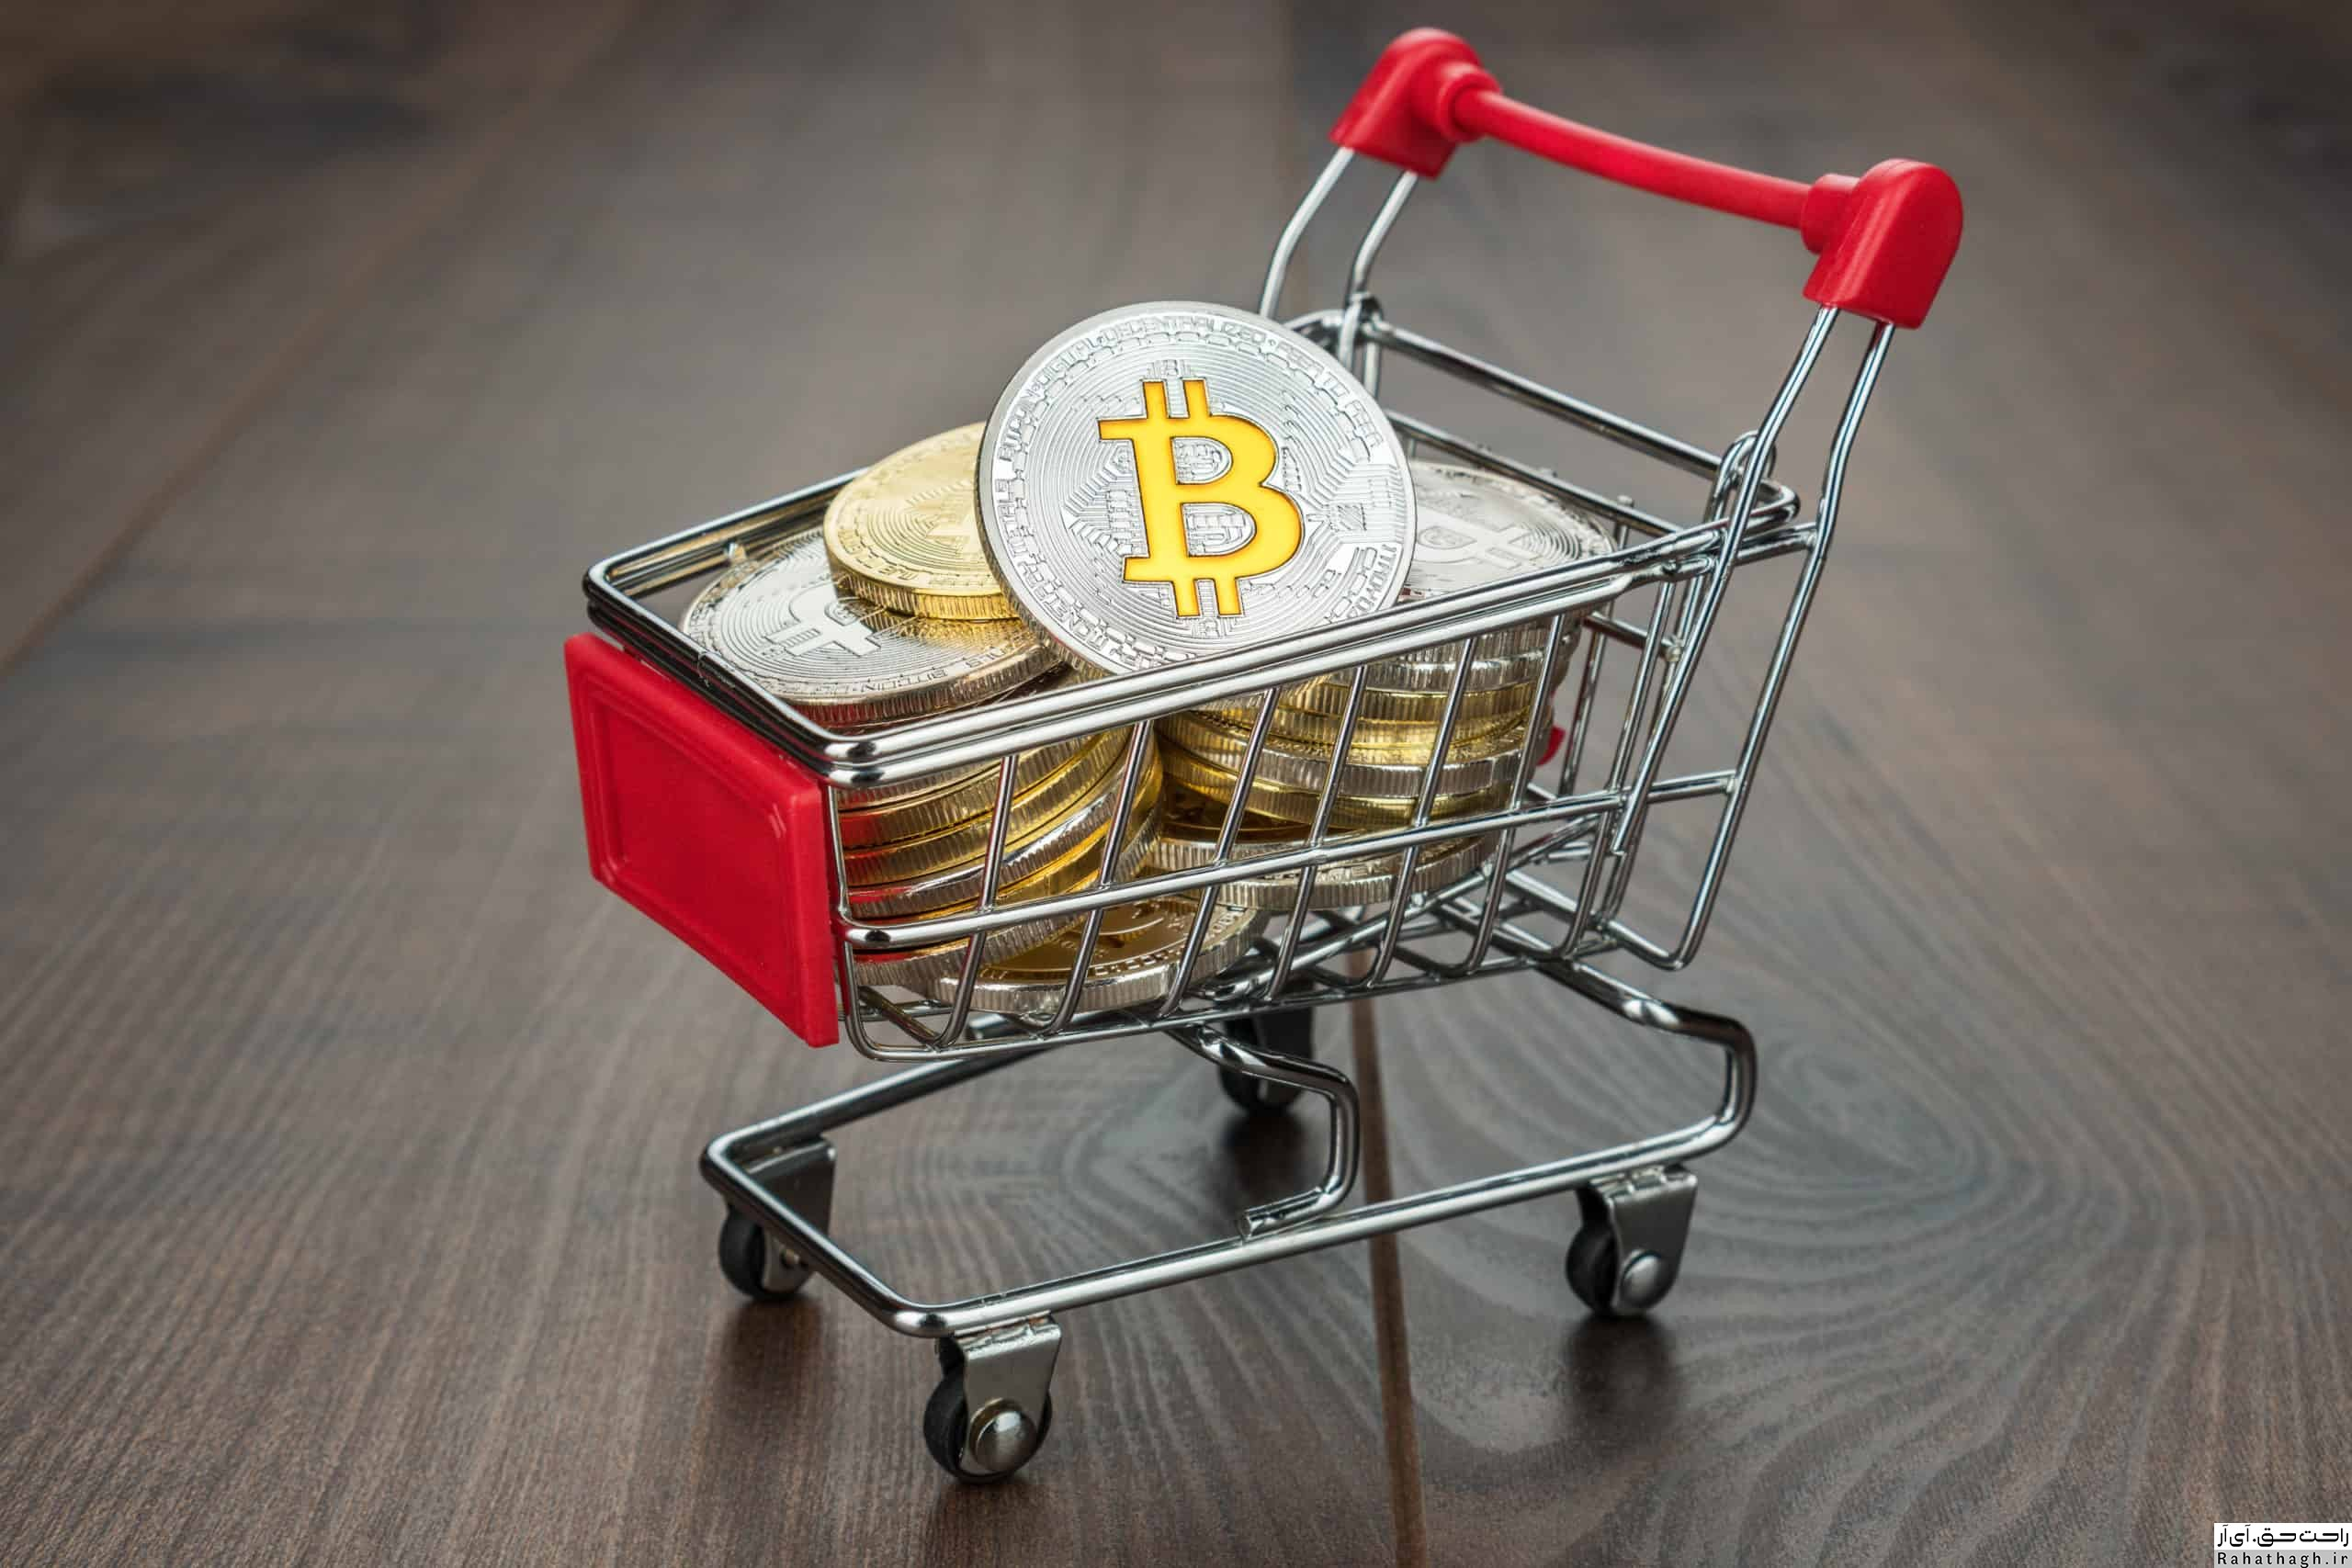 https://s18.picofile.com/file/8432193650/shopping_cryptocurrency_%D8%B1%D8%A7%D8%AD%D8%AA_%D8%AD%D9%82.jpg